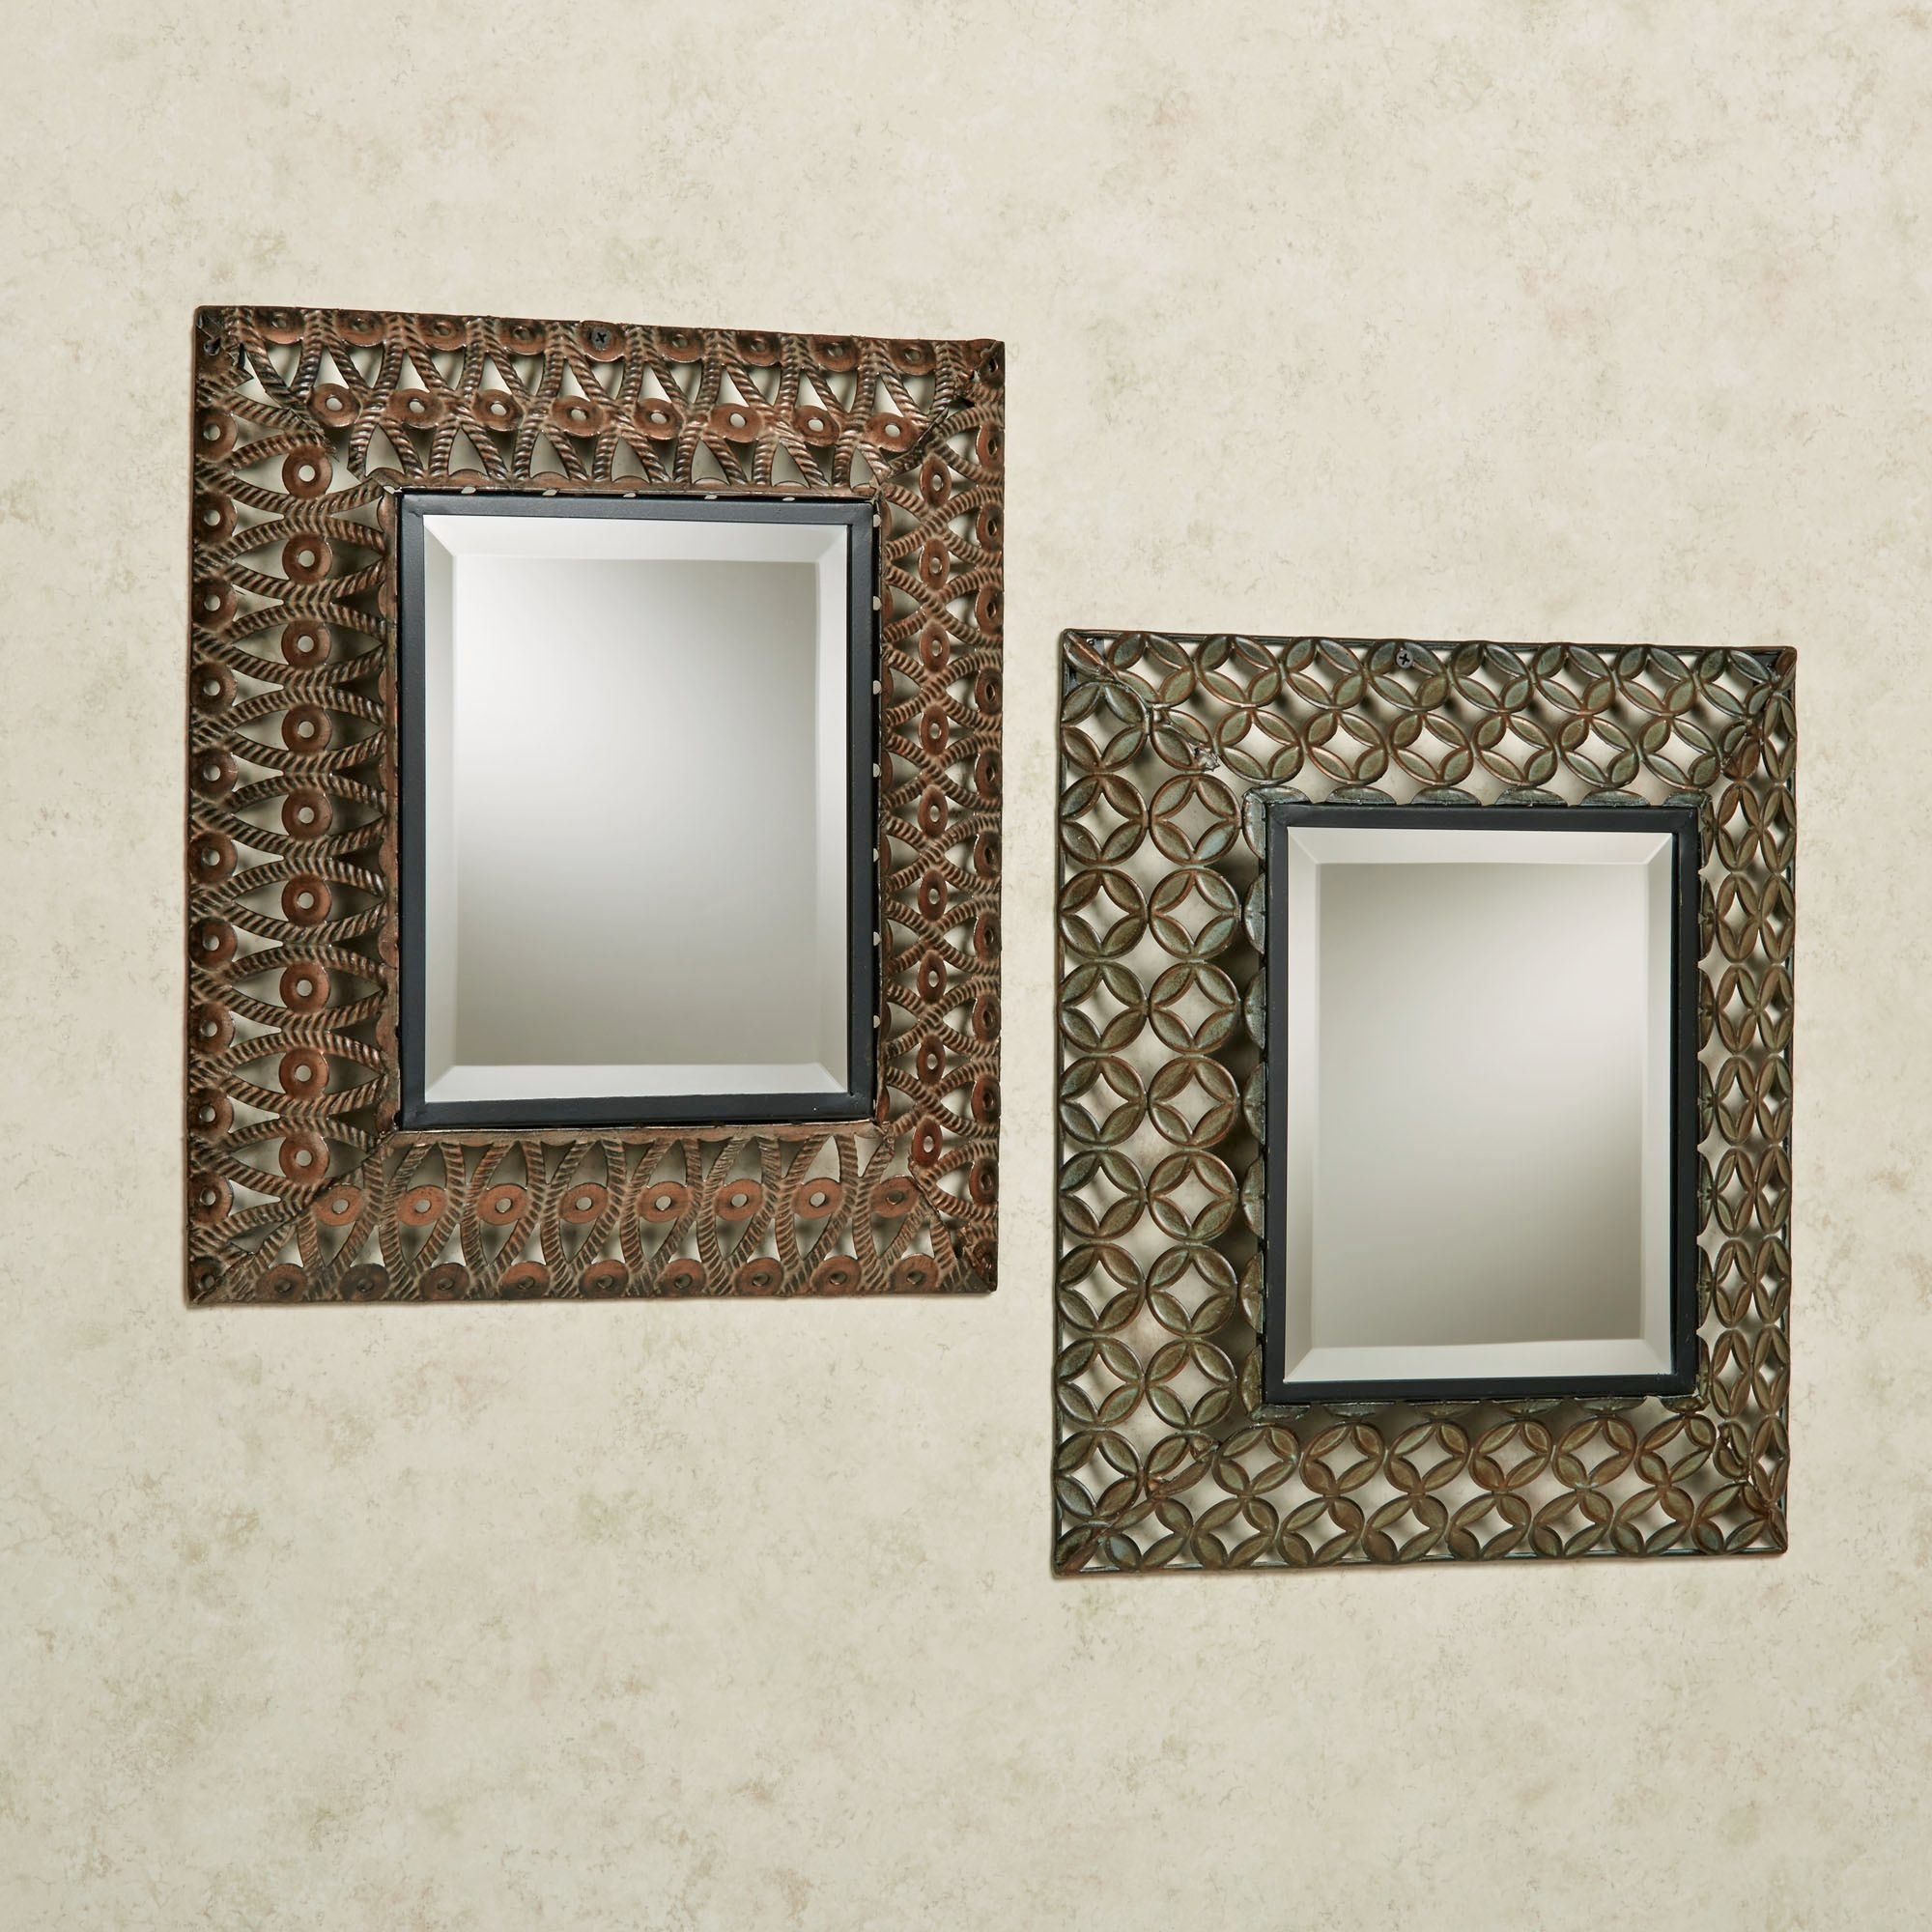 Cheap Decorative Wall Mirror Vintage Mirror Sets Wall Decor – Wall In Recent Mirror Sets Wall Accents (View 3 of 15)